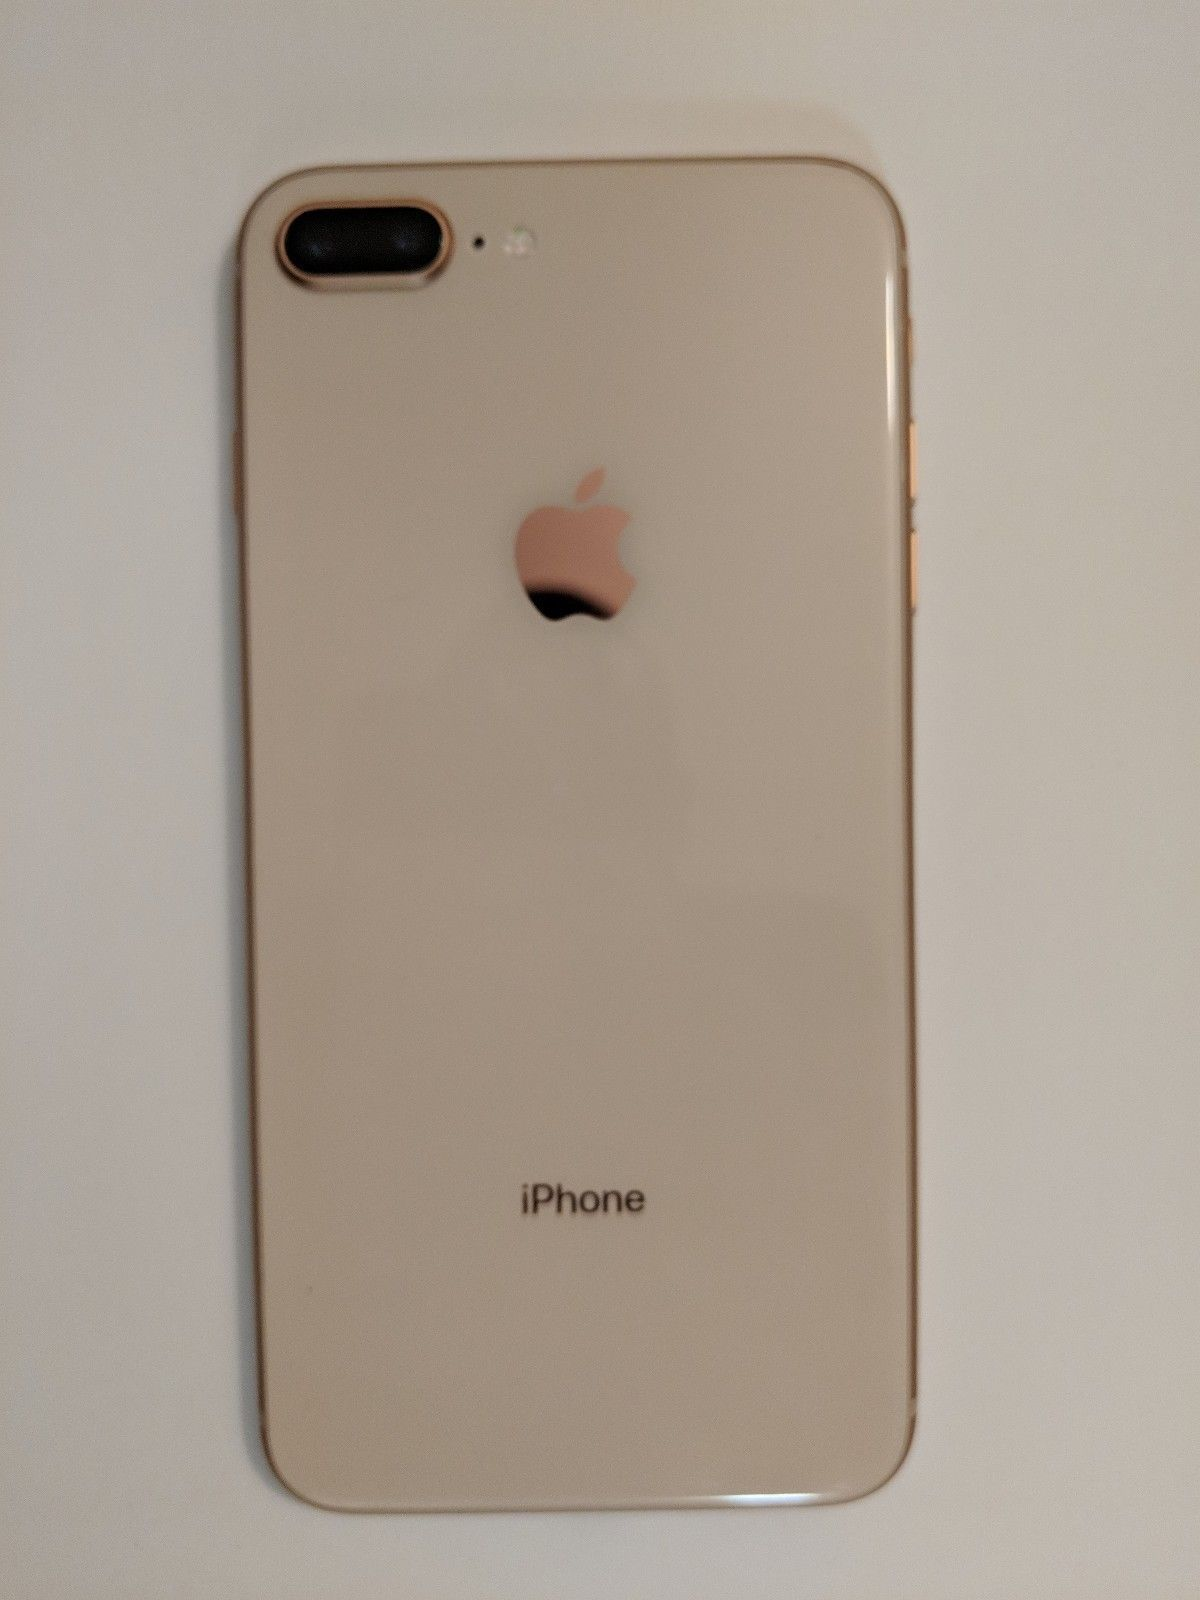 Apple Iphone 8 Plus 64gb Gold Verizon A1864 Cdma Gsm